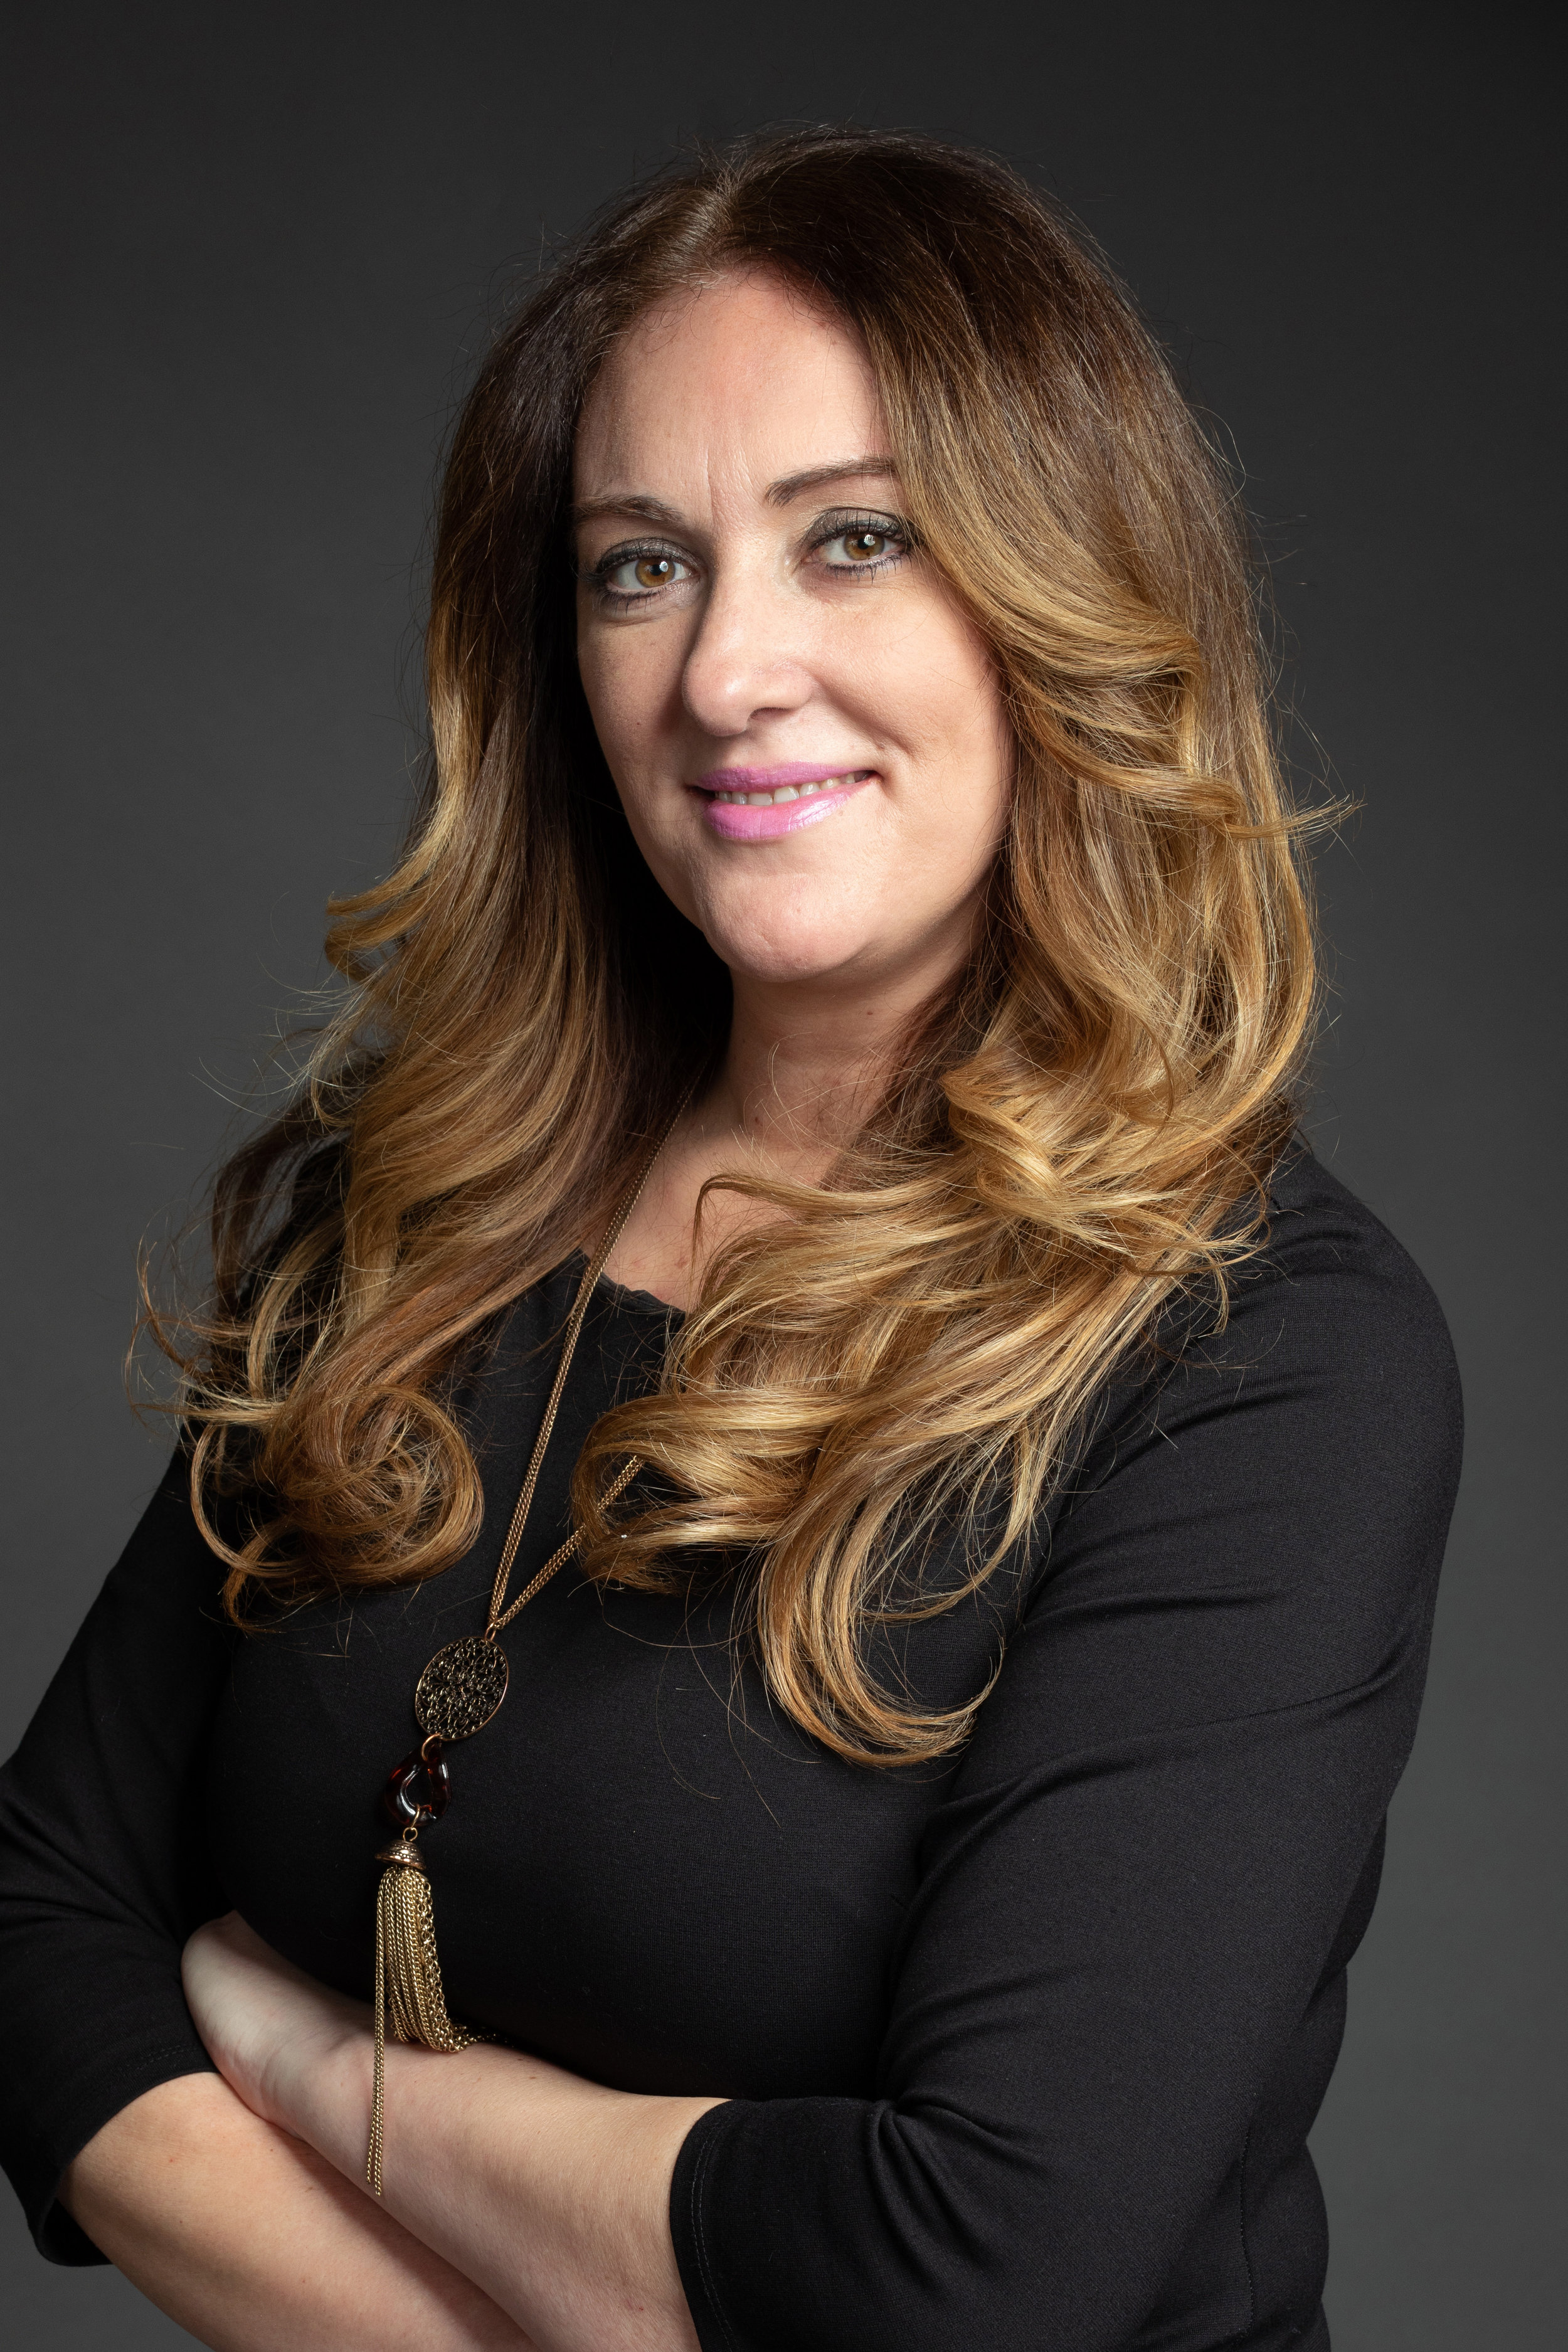 As Senior Vice President of Business Operations at GSTV, Violeta Ivezaj is responsible for driving growth for the GSTV brand, its partners and viewers through strategic media operations and engaging consumer experiences. She brings 15+ years of operational and media experience, and since joining GSTV in 2013, Violeta has played a crucial role in the evolution and growth of the fuel media marketplace and establishment of GSTV as a national video network.    Click here for more   >>>